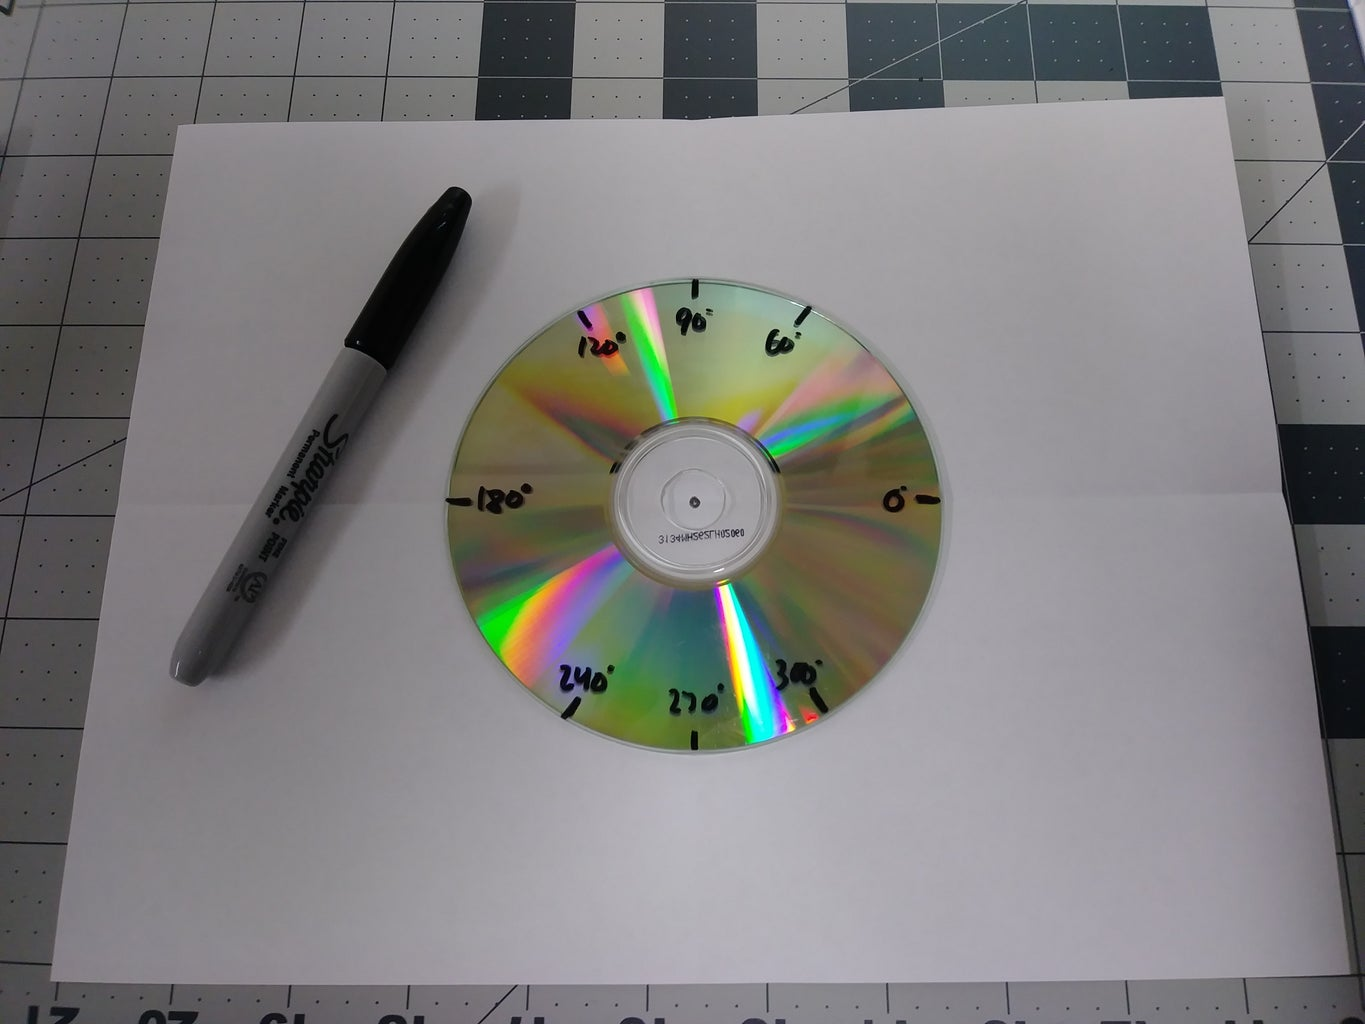 Labeling the Angle Measures on the CD (The Multiples of 30°)